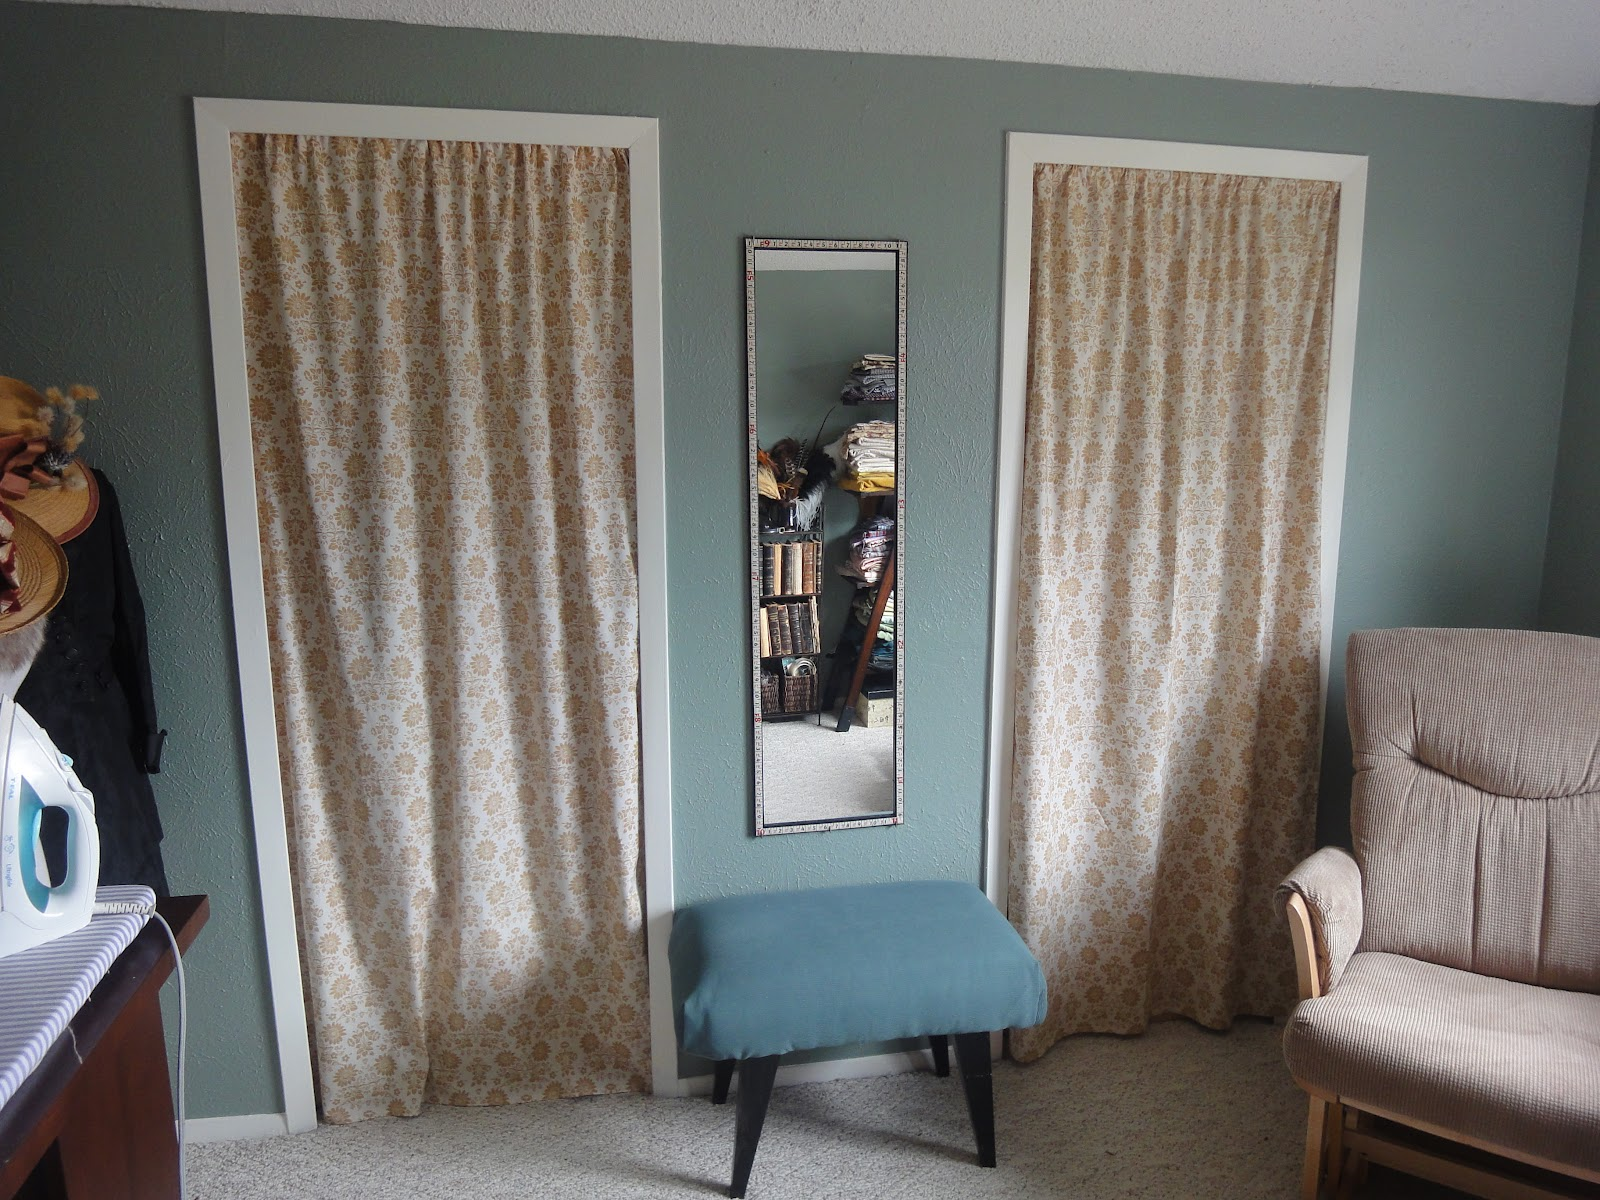 Cream And Stylish Pattern Design Of Curtains Door With Small Table A Recliner Long Mirror